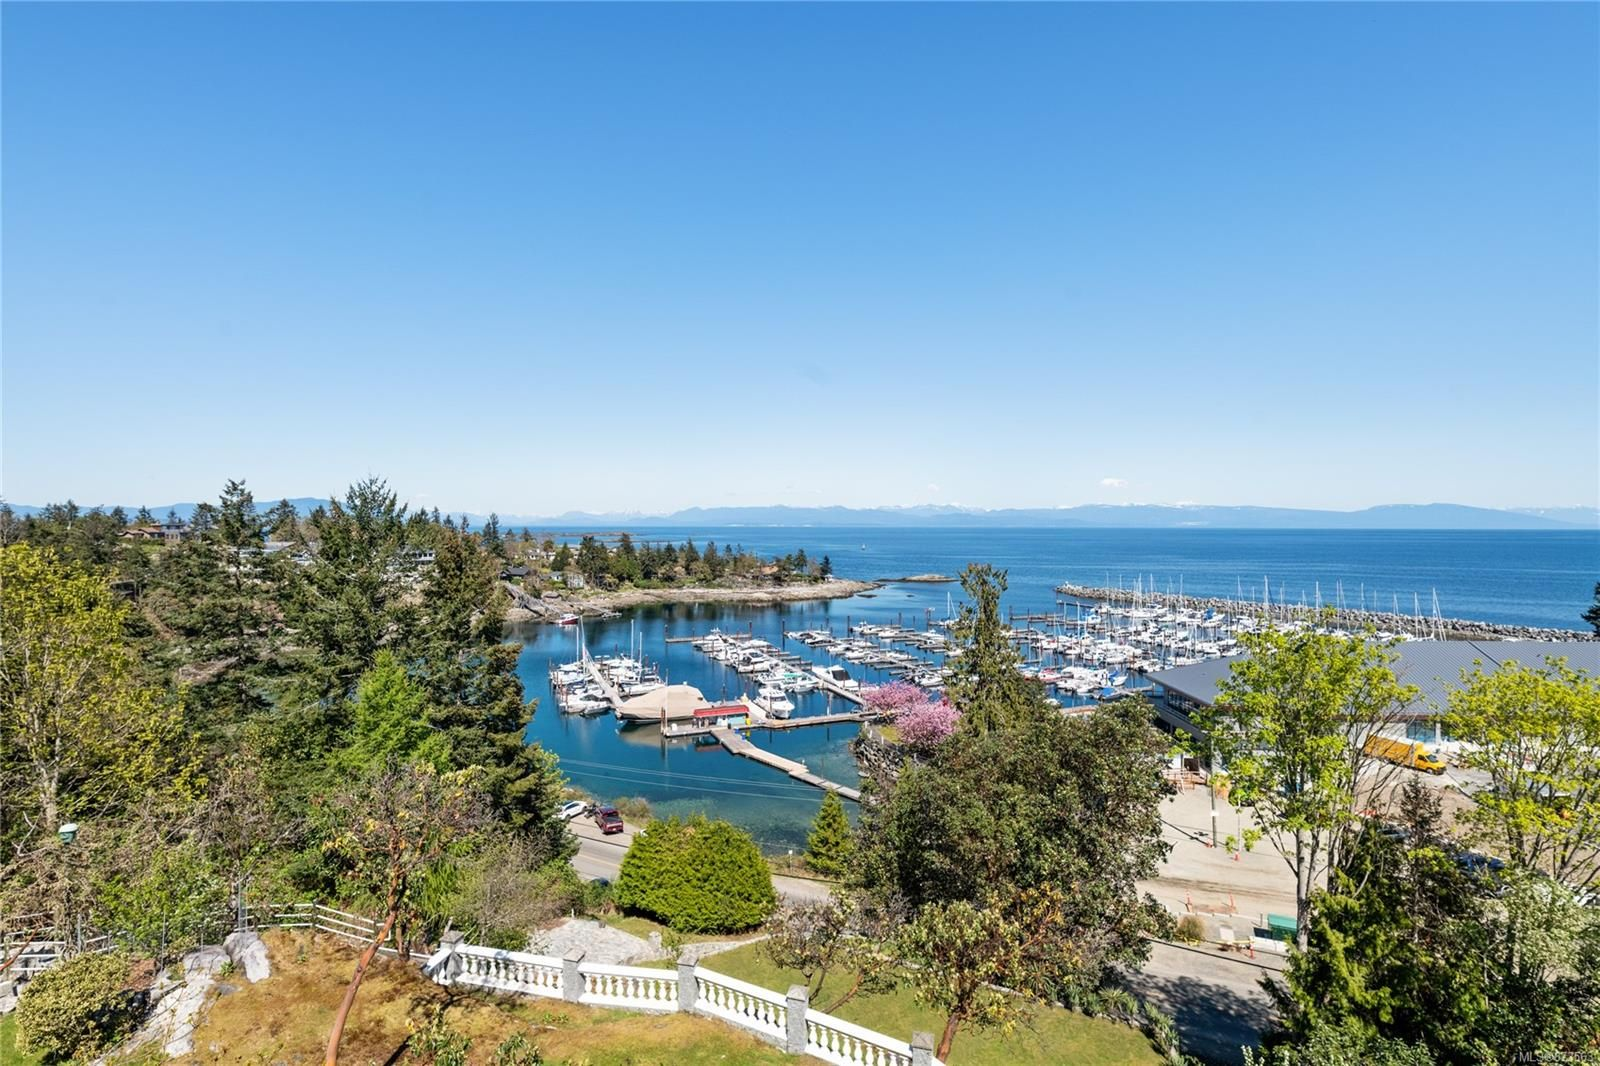 Main Photo: 3483 Redden Rd in : PQ Fairwinds House for sale (Parksville/Qualicum)  : MLS®# 873563